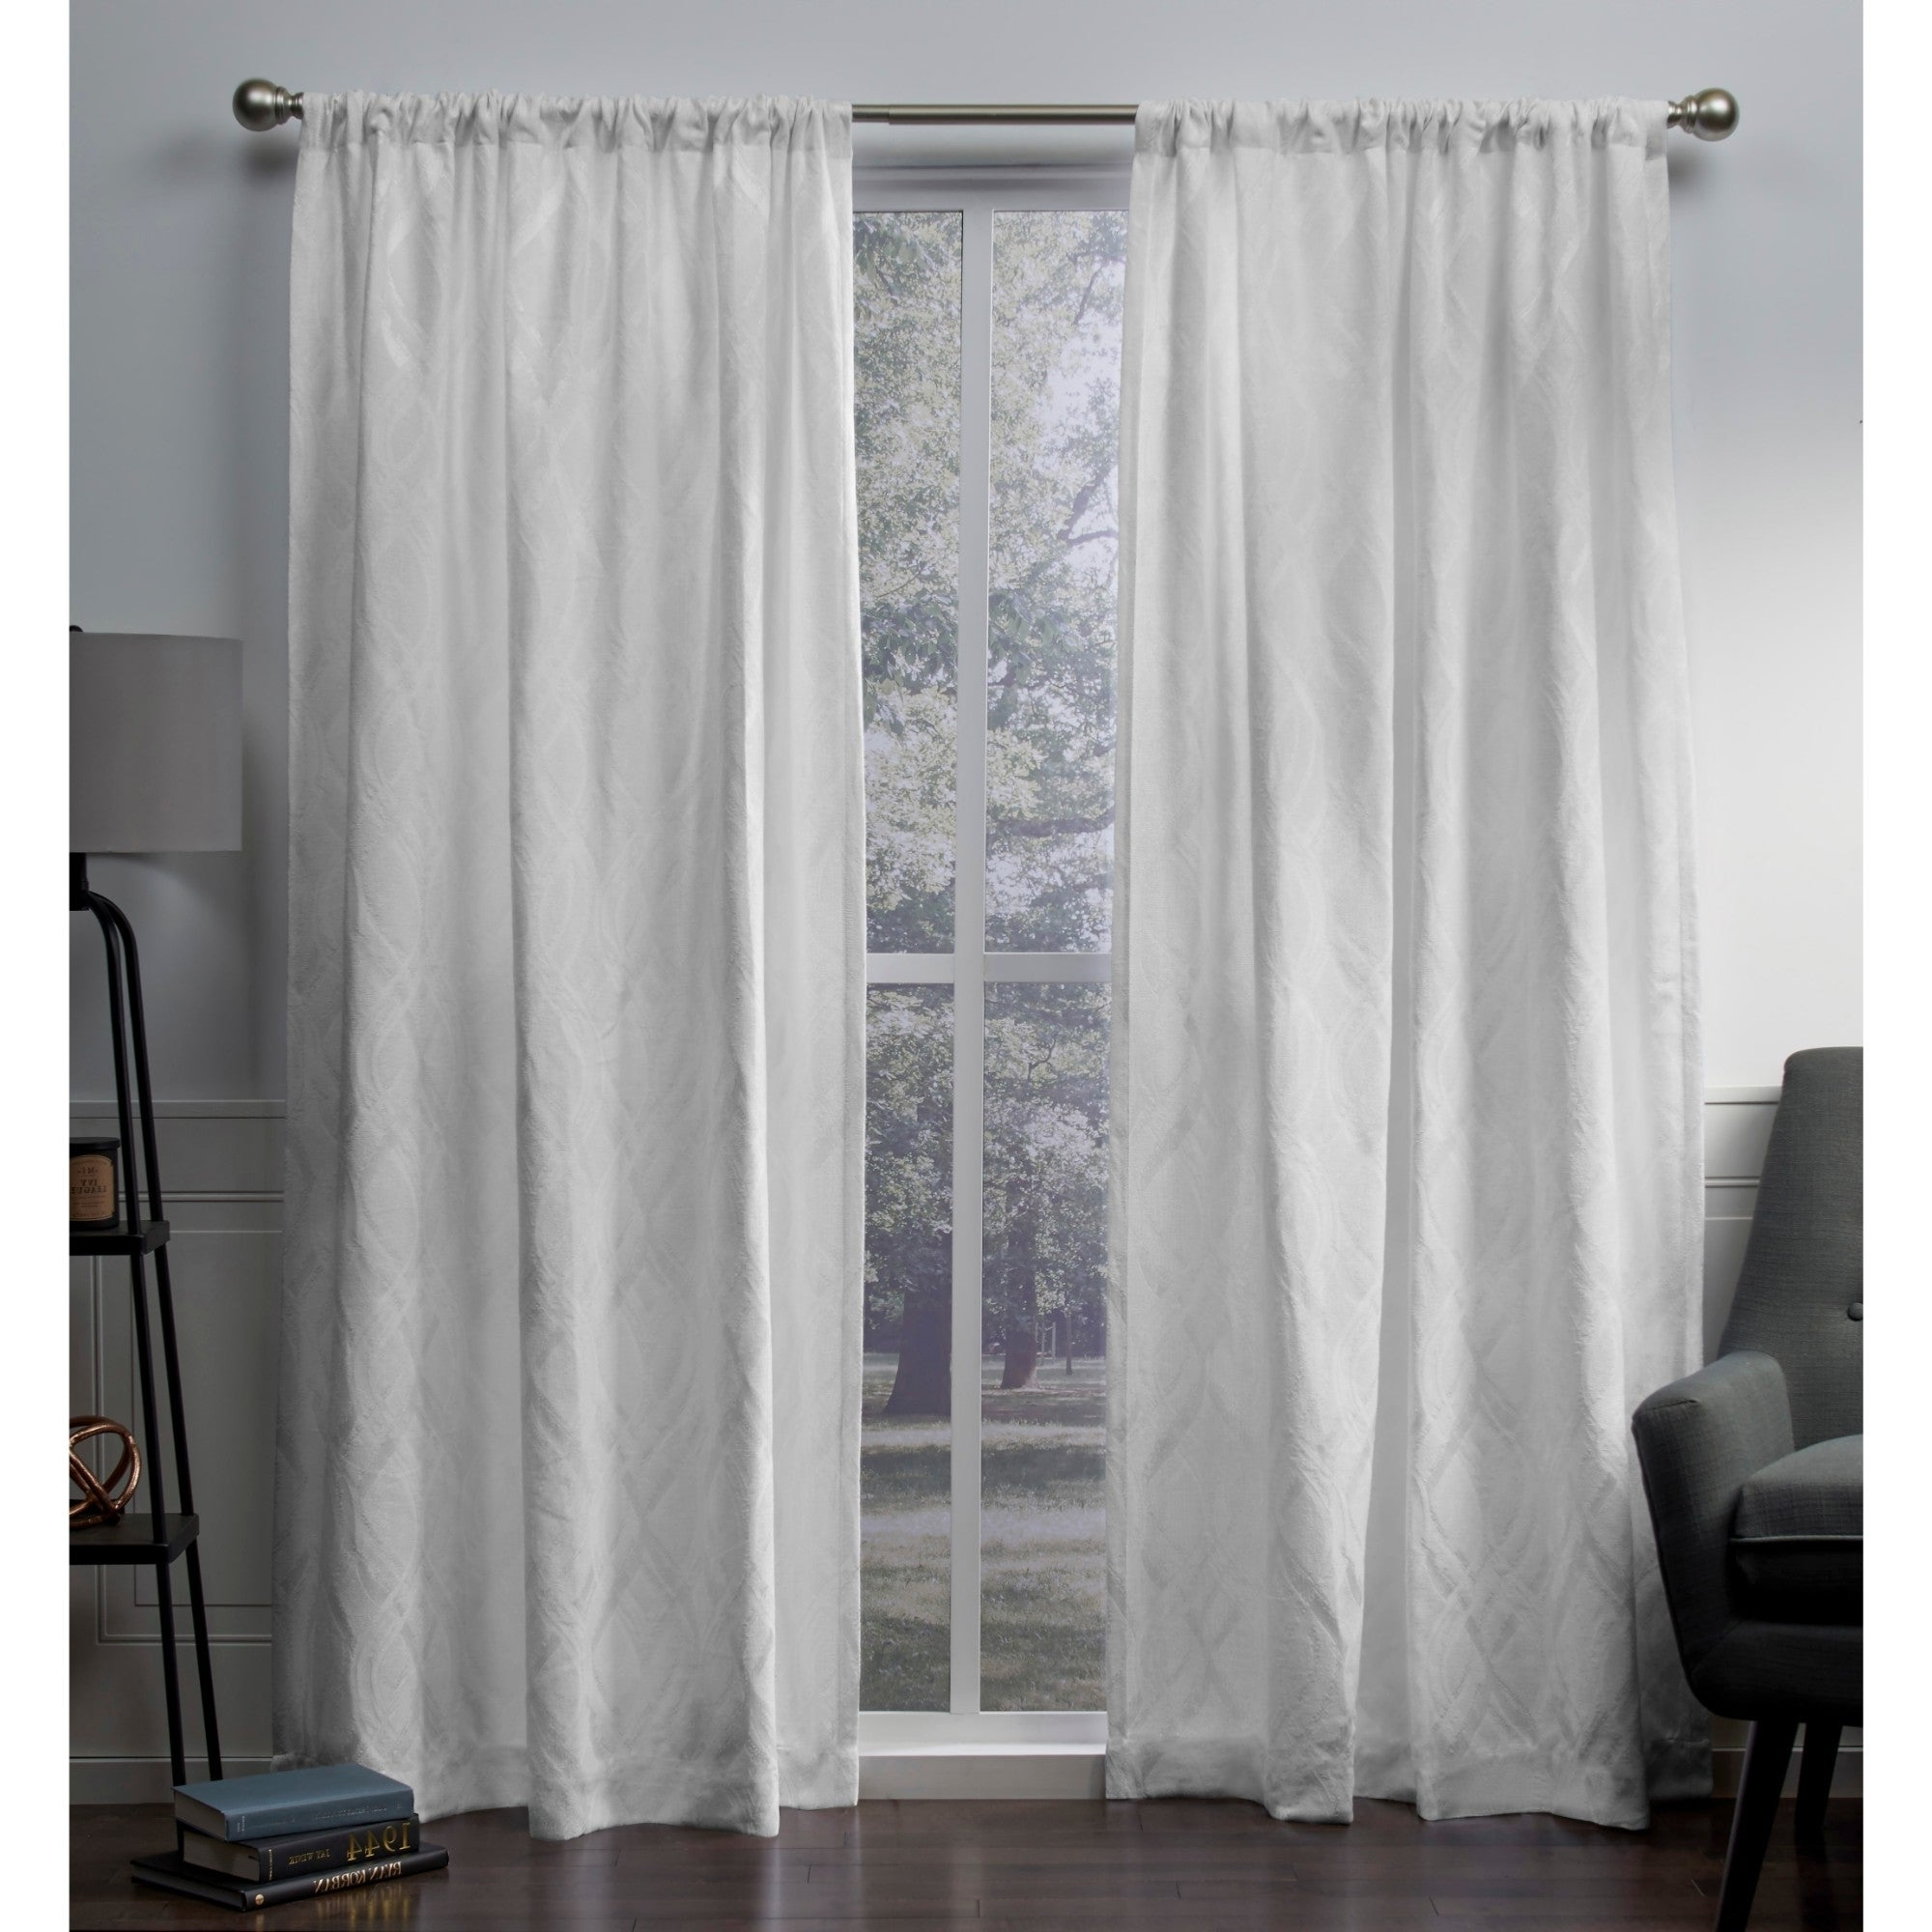 Ati Home Elena Chenille Rod Pocket Top Curtain Panel Pair Inside Famous Infinity Sheer Rod Pocket Curtain Panels (View 15 of 20)